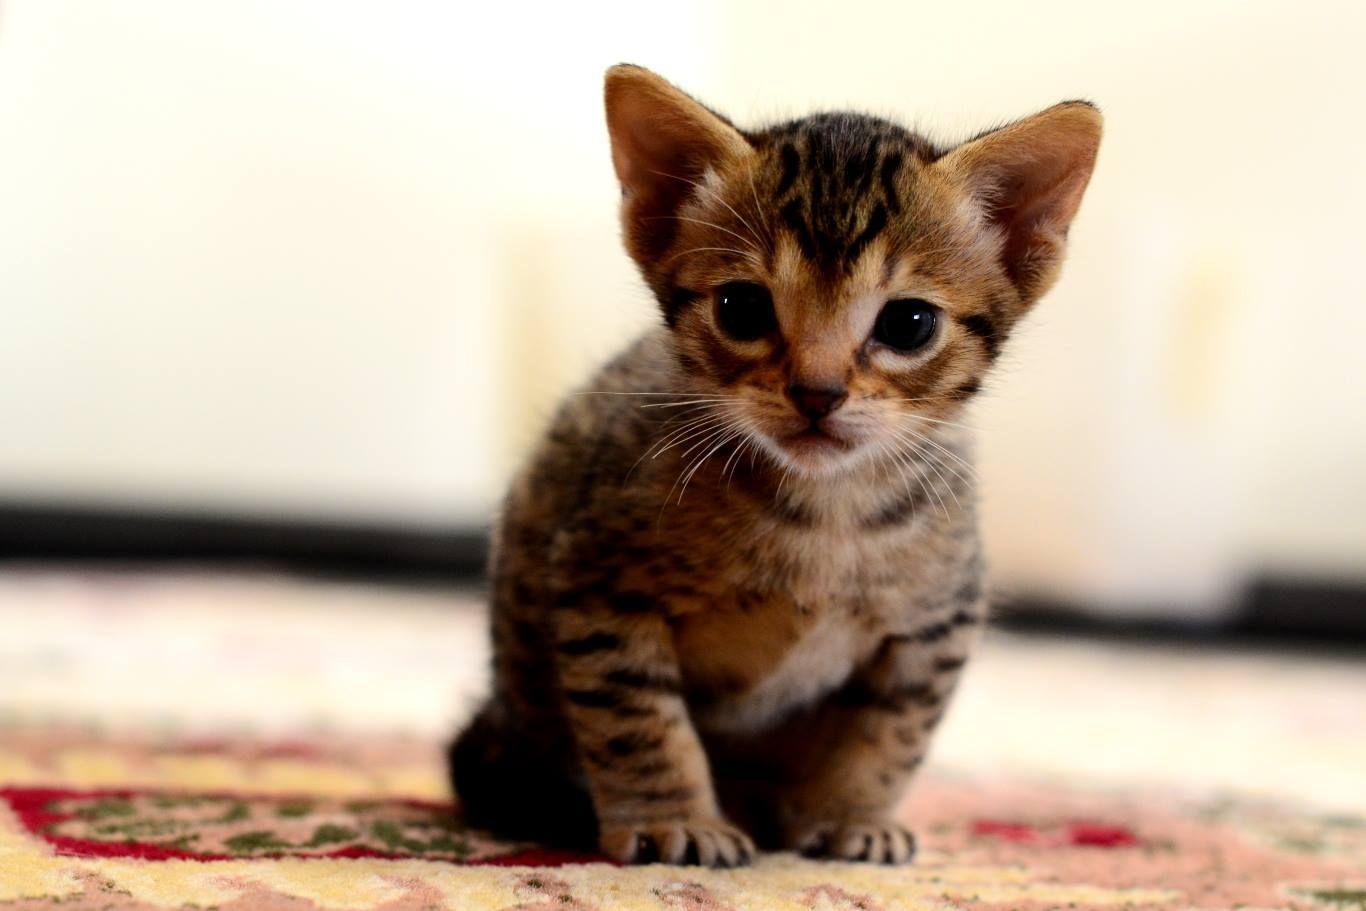 The Ocicat Cat Is An All Domestic Breed Of Cat Which Resembles A Wild Cat But Has No Wild Dna In Its Gene Pool The Breed Is Unusua Ocicat Wild Cats Cat